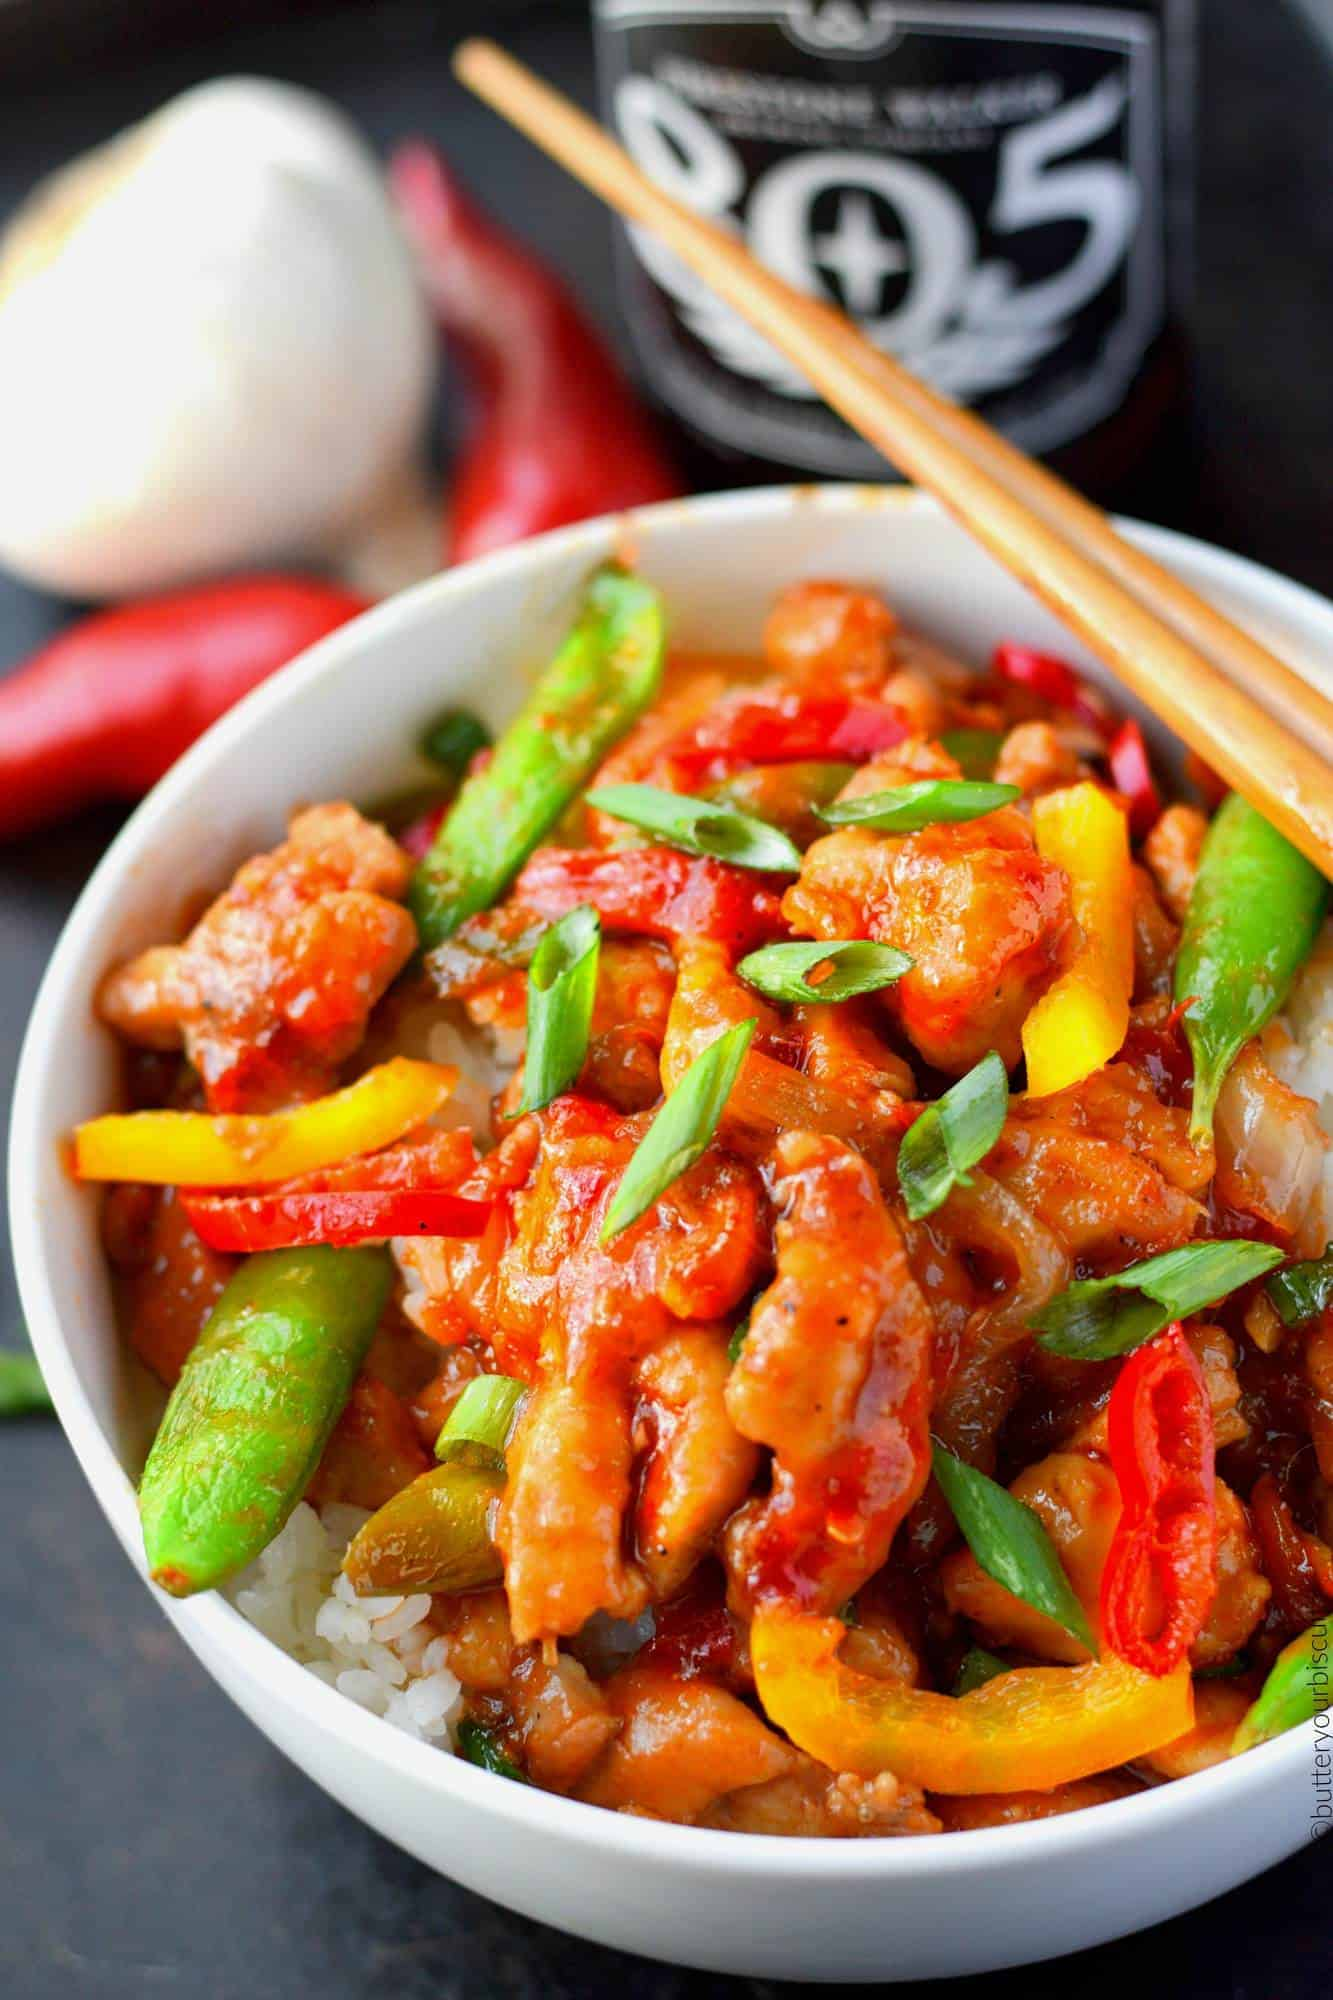 Sweet and Spicy chicken stir fry in a bowl with chopsticks